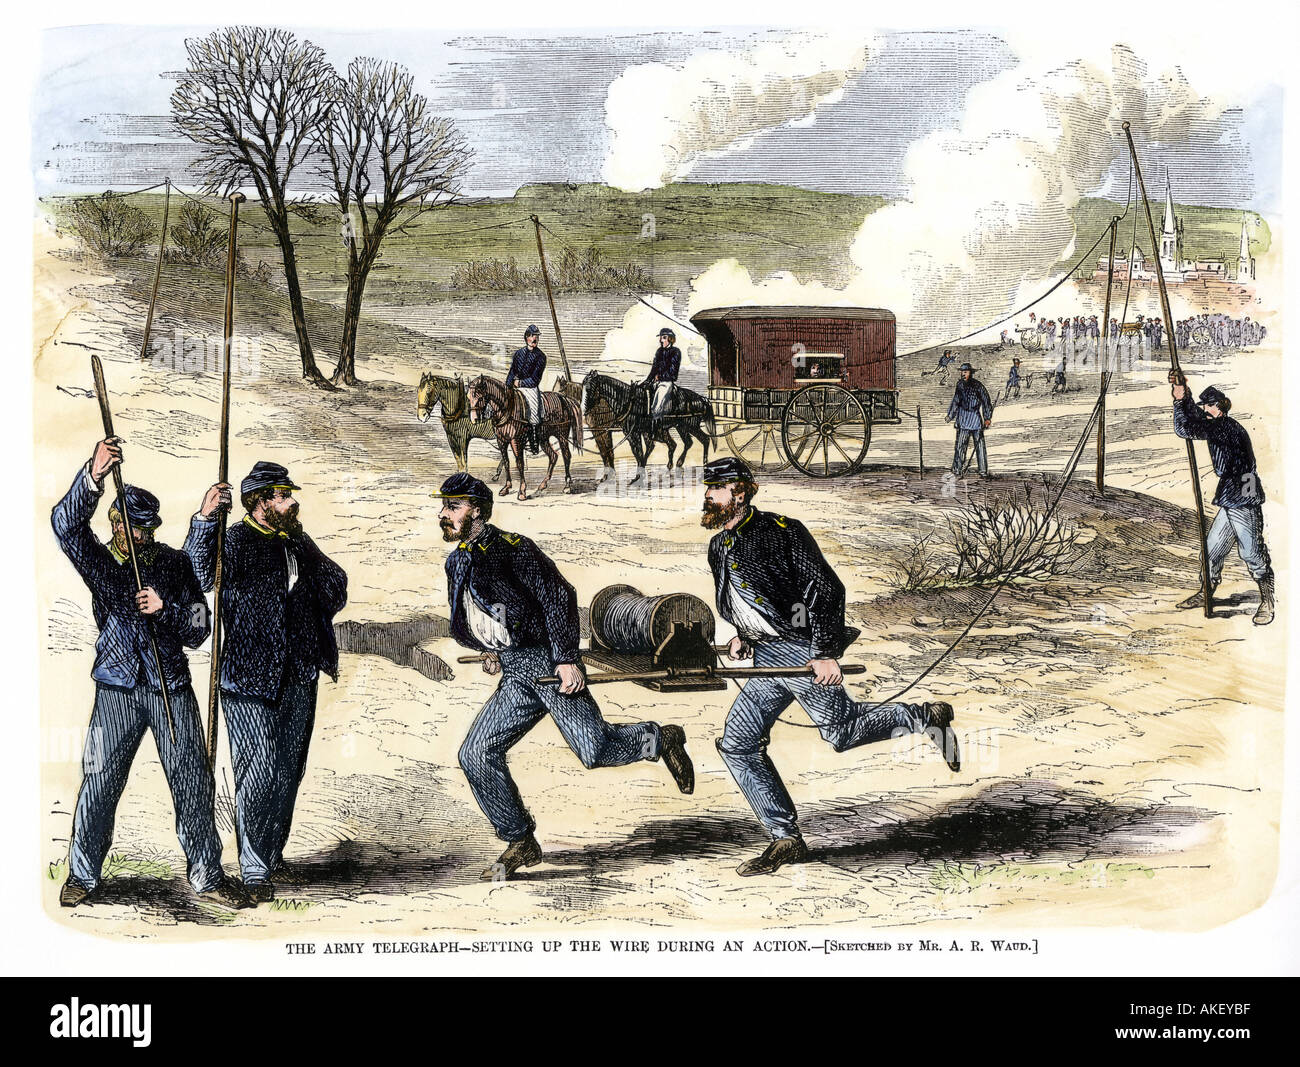 Union Army Signal Corps setting up telegraph wire during a Civil War battle 1863. Hand-colored woodcut - Stock Image